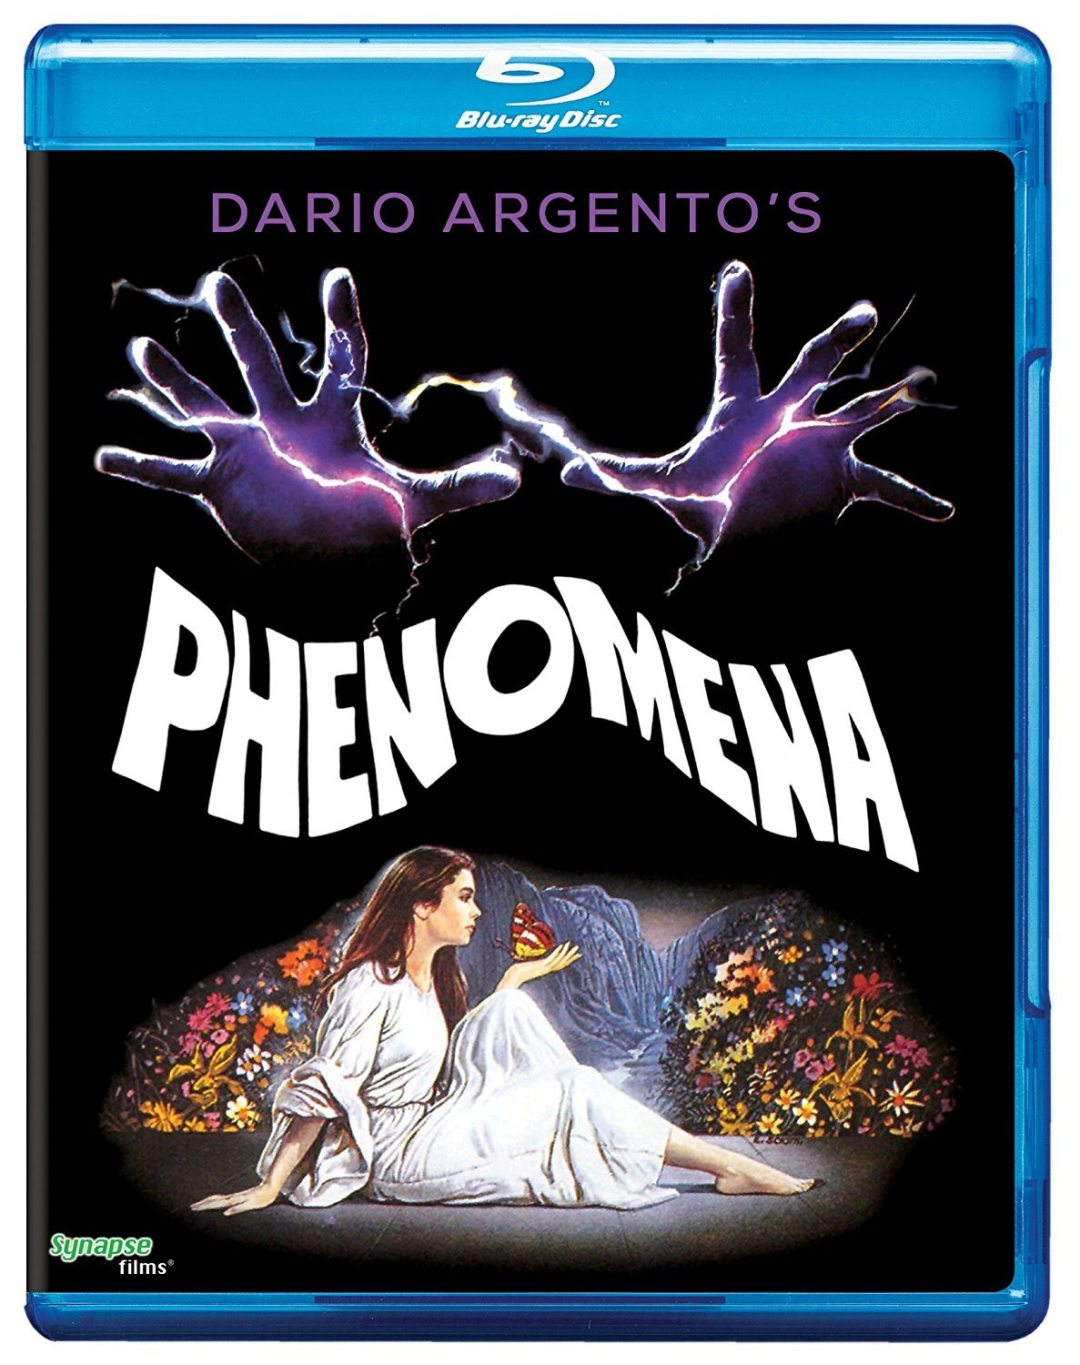 Phenomena – Blu-ray Review